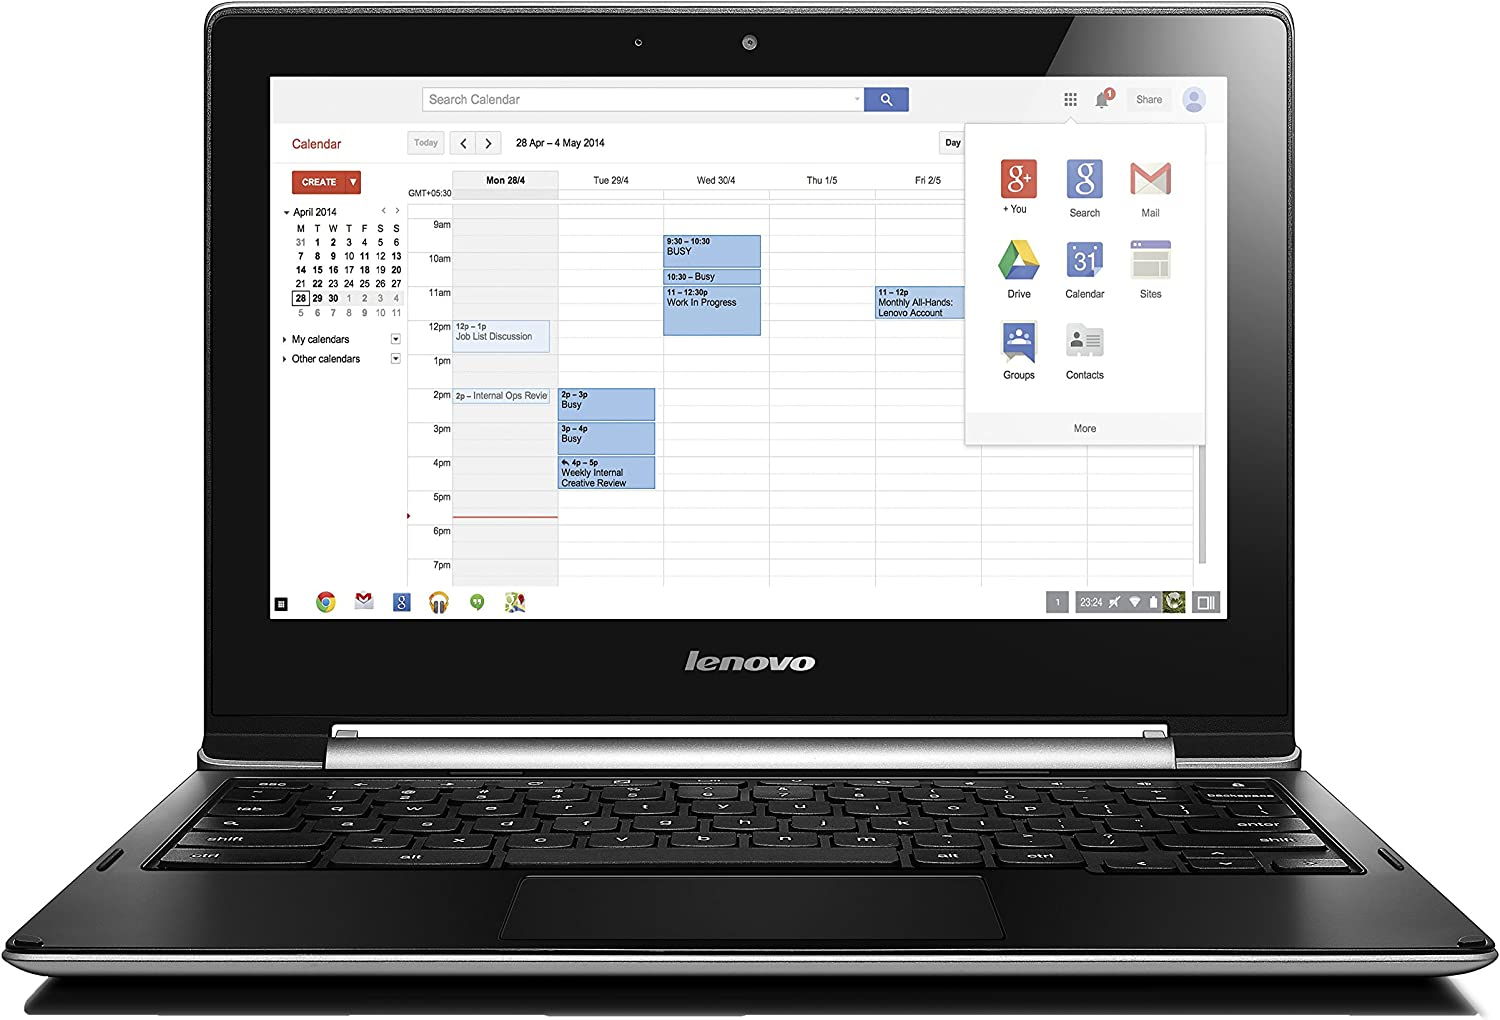 Lenovo N20p Multimode Touchscreen Chromebook (Grey) - (Intel CDC N2830 2.16  GHz, 4 GB RAM, 16 GB SSD, Integrated Graphics, Webcam, Micro HDMI,  Bluetooth, Wi-Fi, Chrome OS): Amazon.co.uk: Computers & Accessories